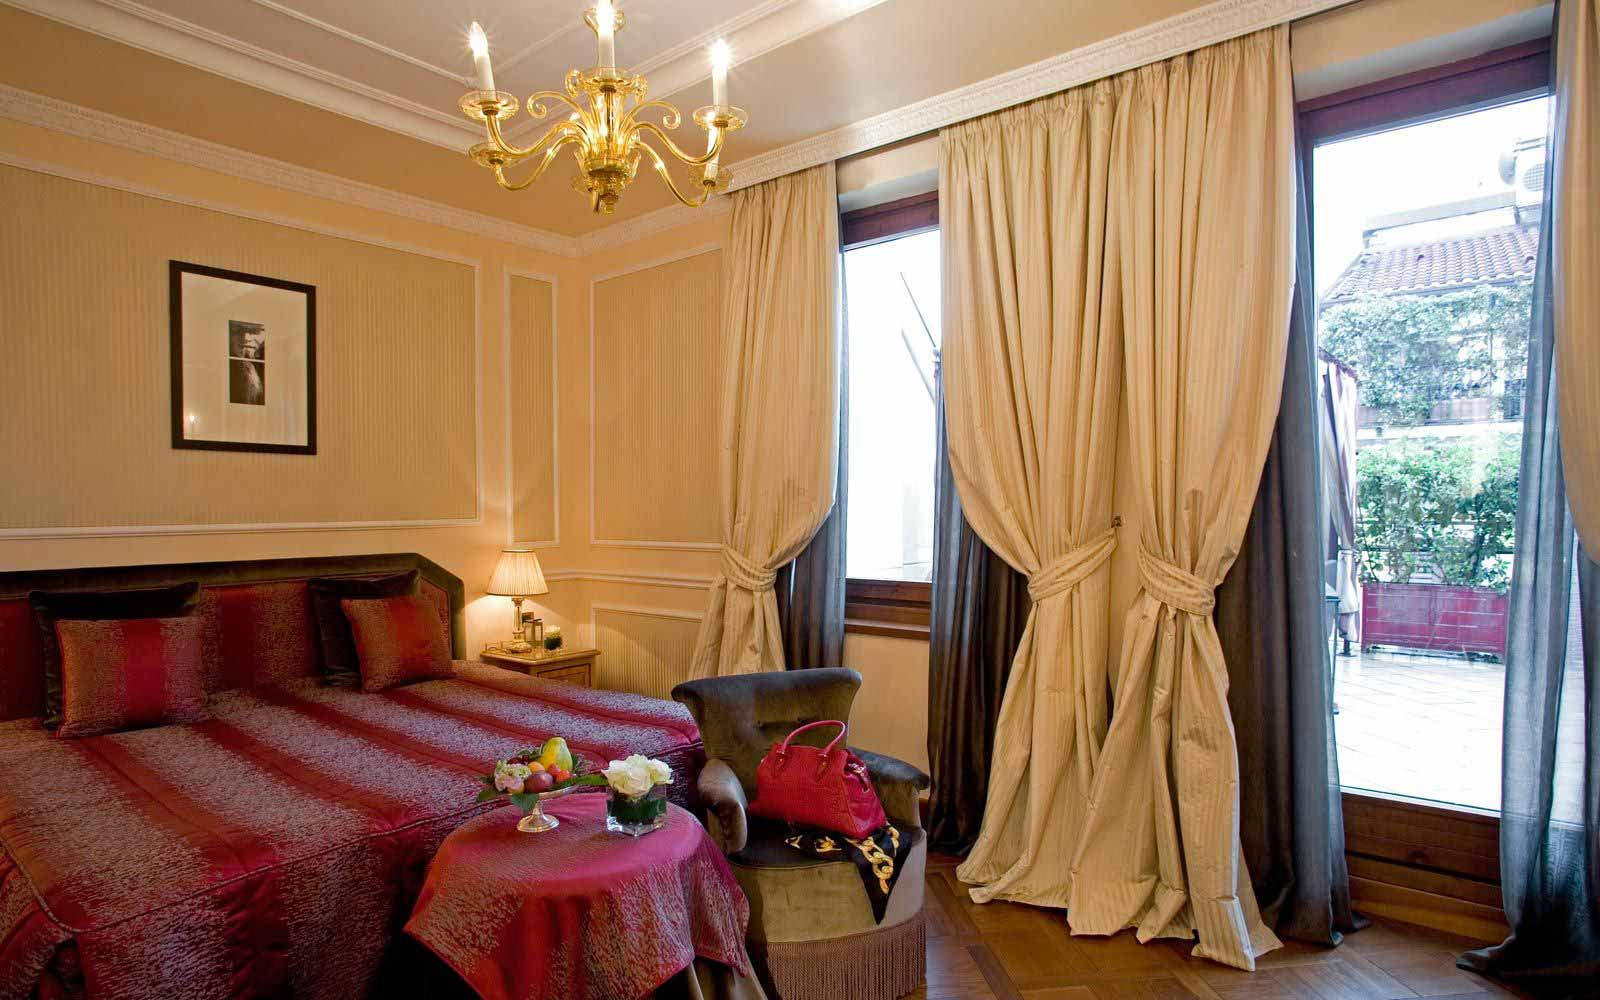 Deluxe room at Carlton Hotel Baglioni